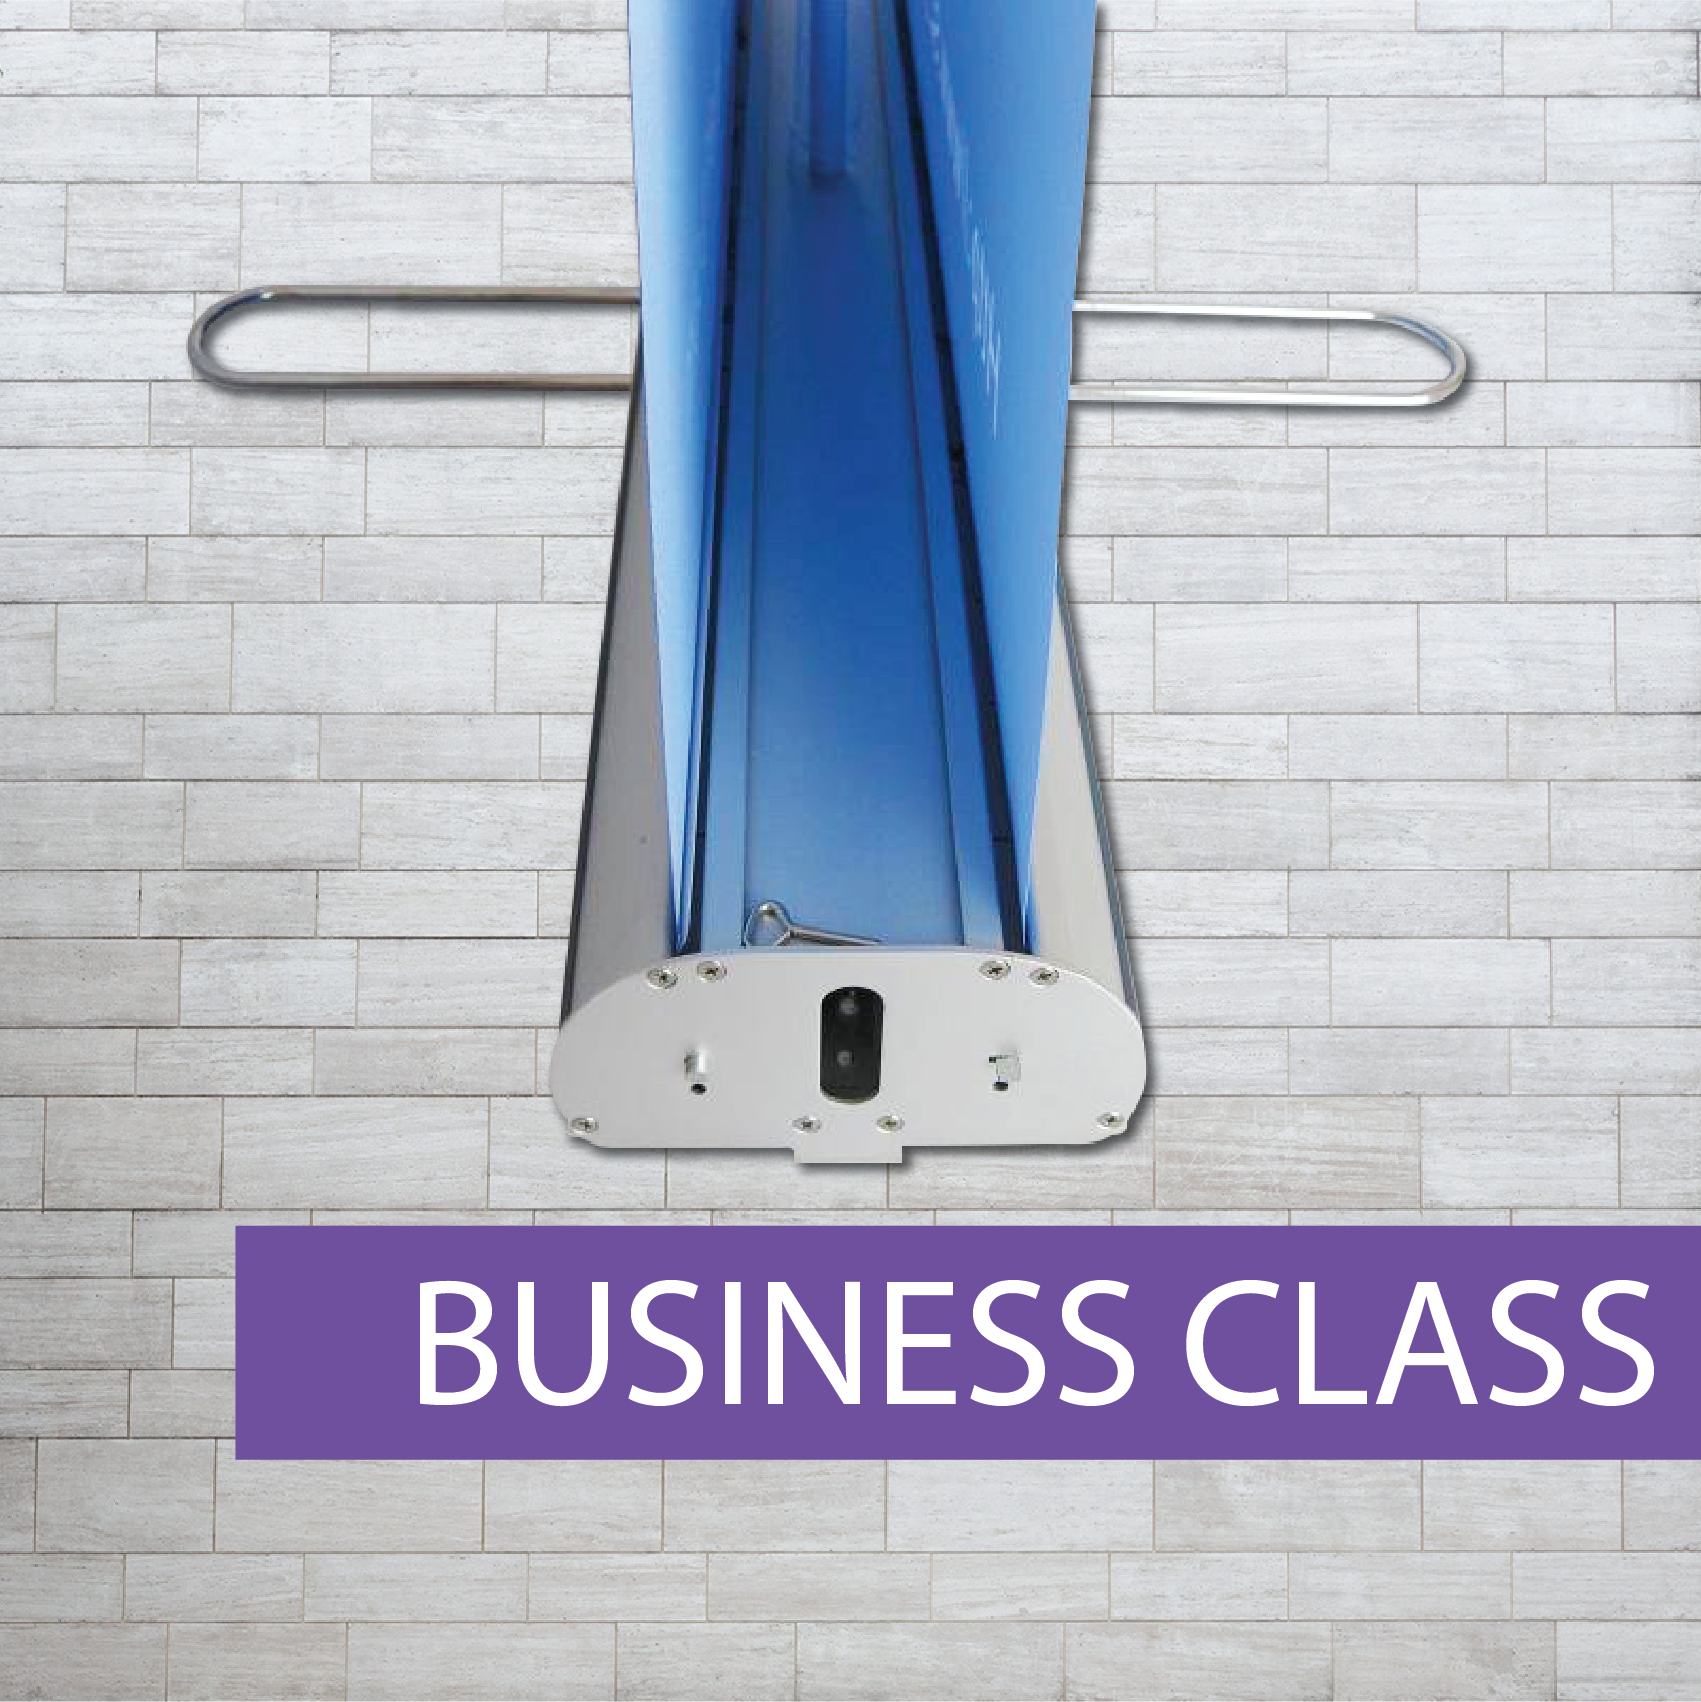 Double sided business style pull-up